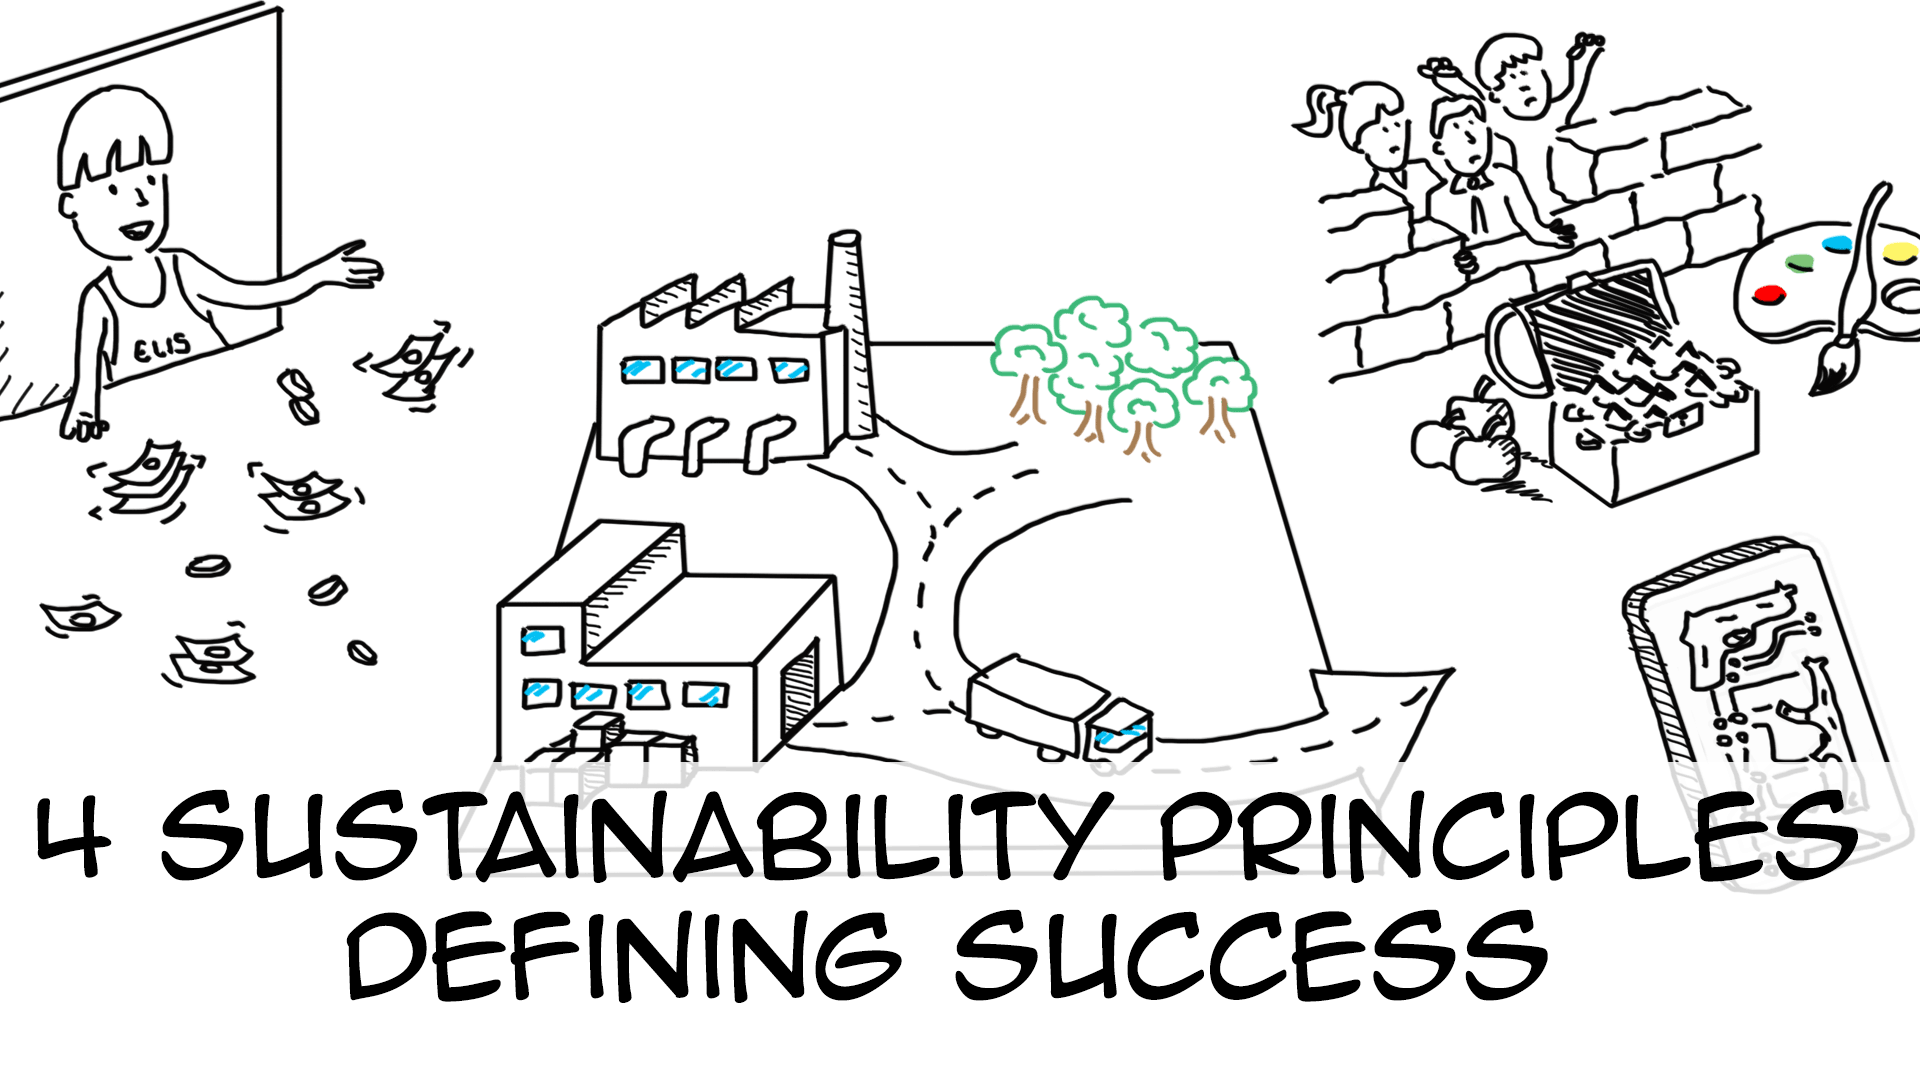 4 sustainability principles to win the sustainability 'game'